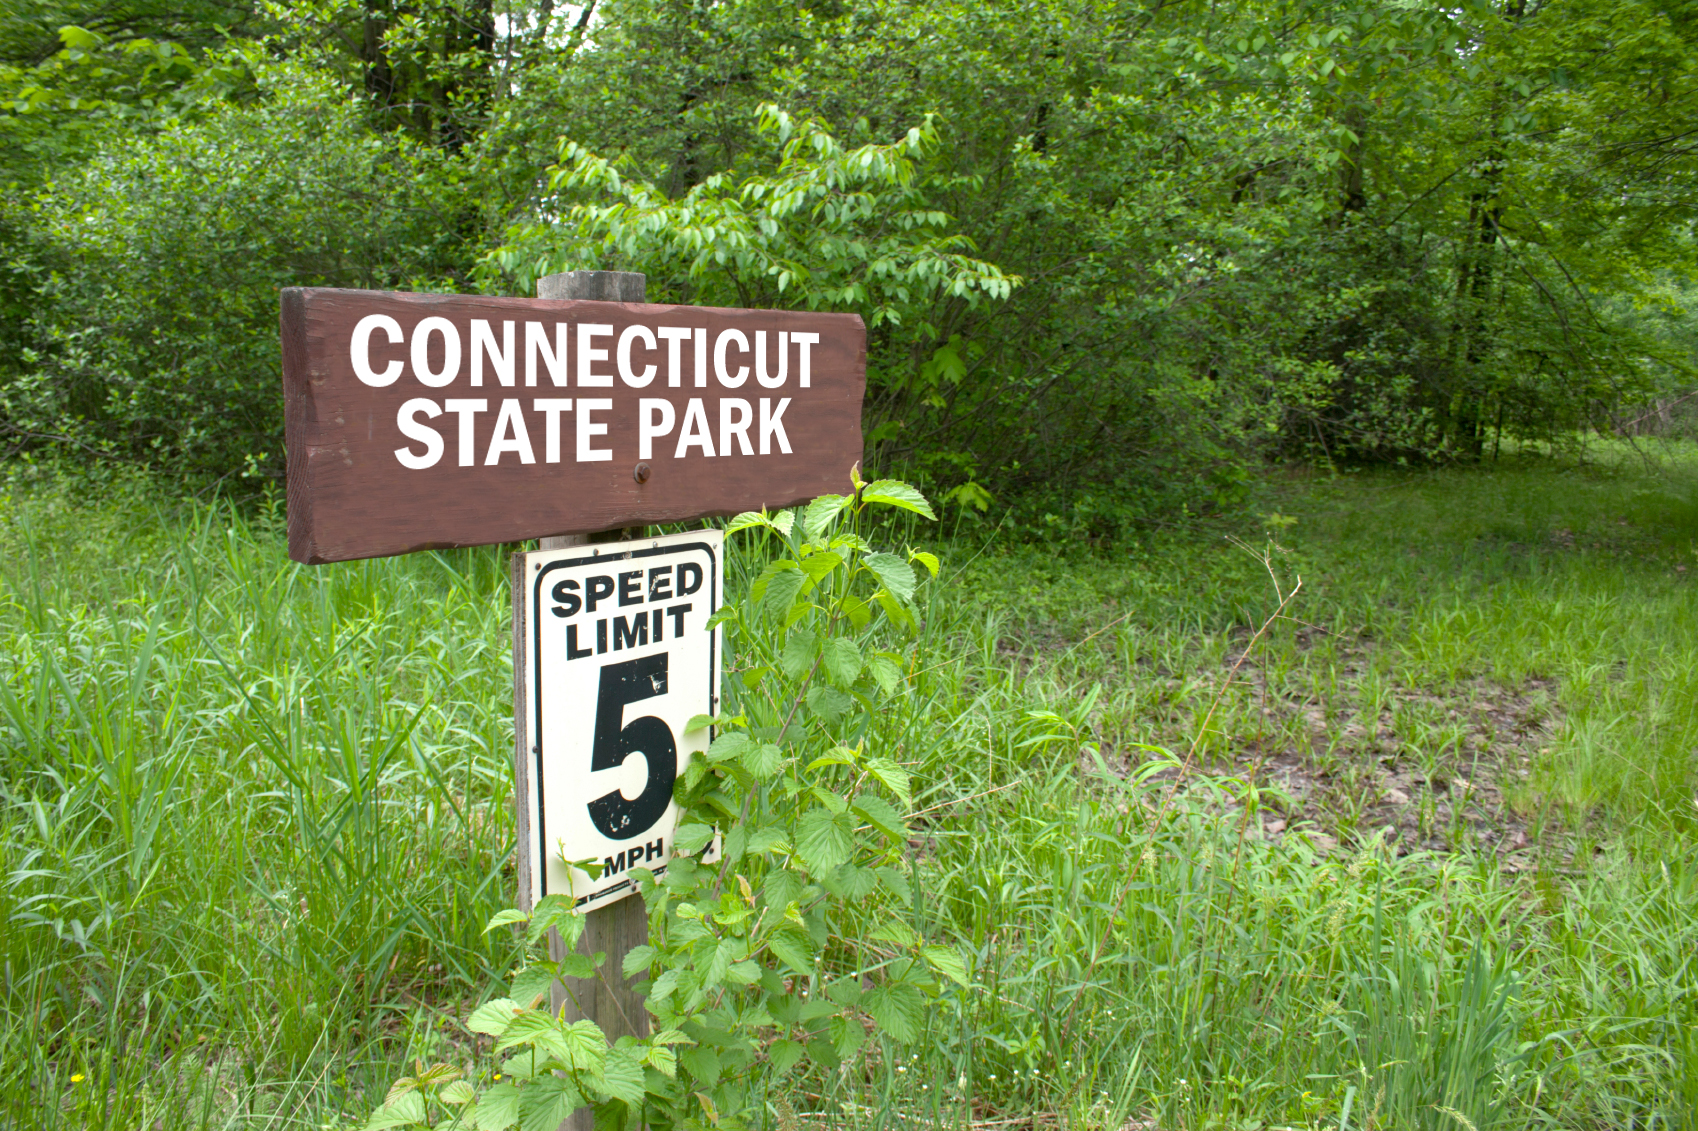 A Connecticut state park sign pointing toward a hiking trail